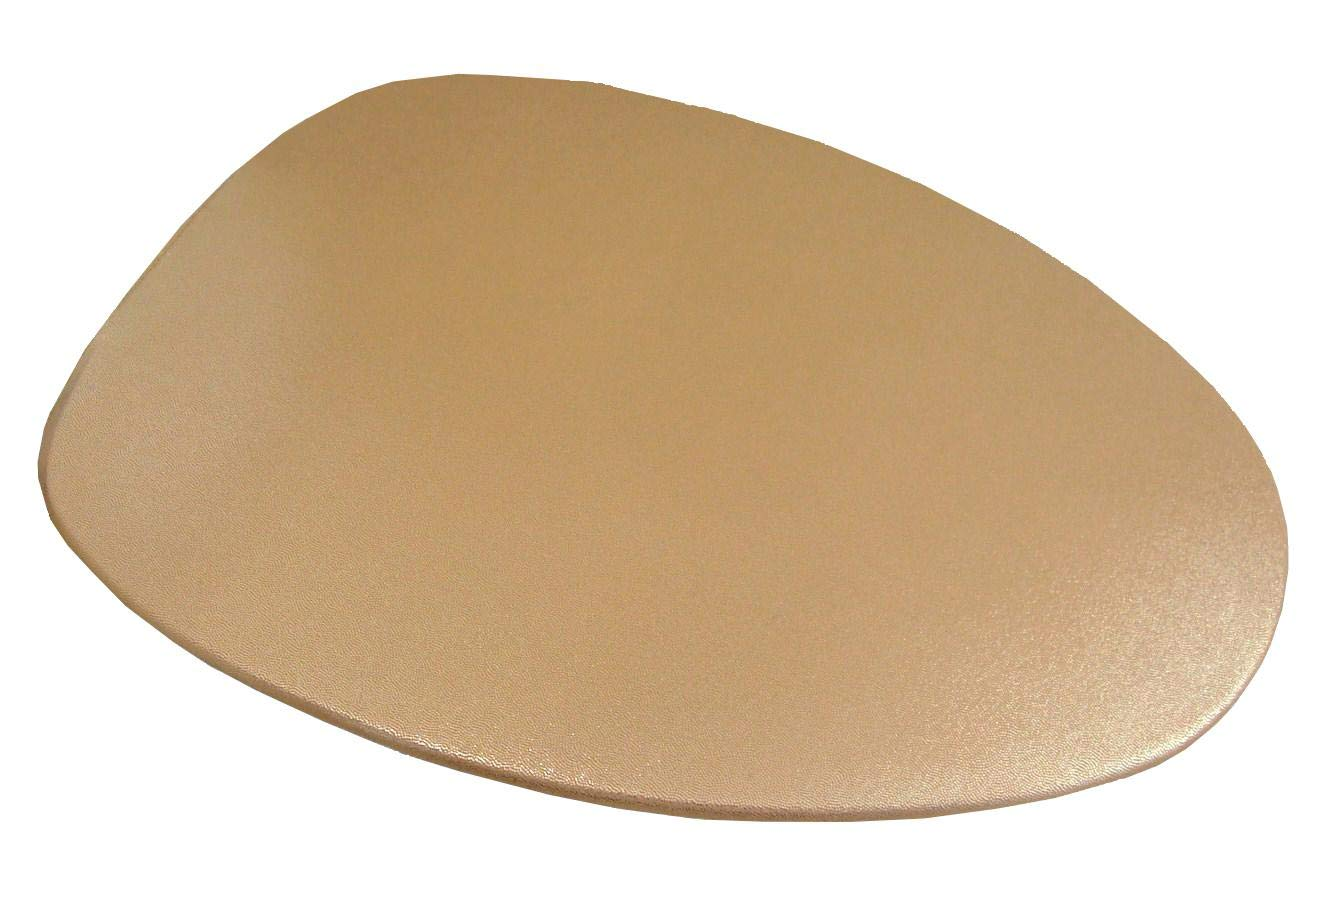 Special Shiny Edition of Fabric Cover for a lid Toilet SEAT for Round & Elongated Models - Handmade in USA (Gold) by NCC New Concept Cover